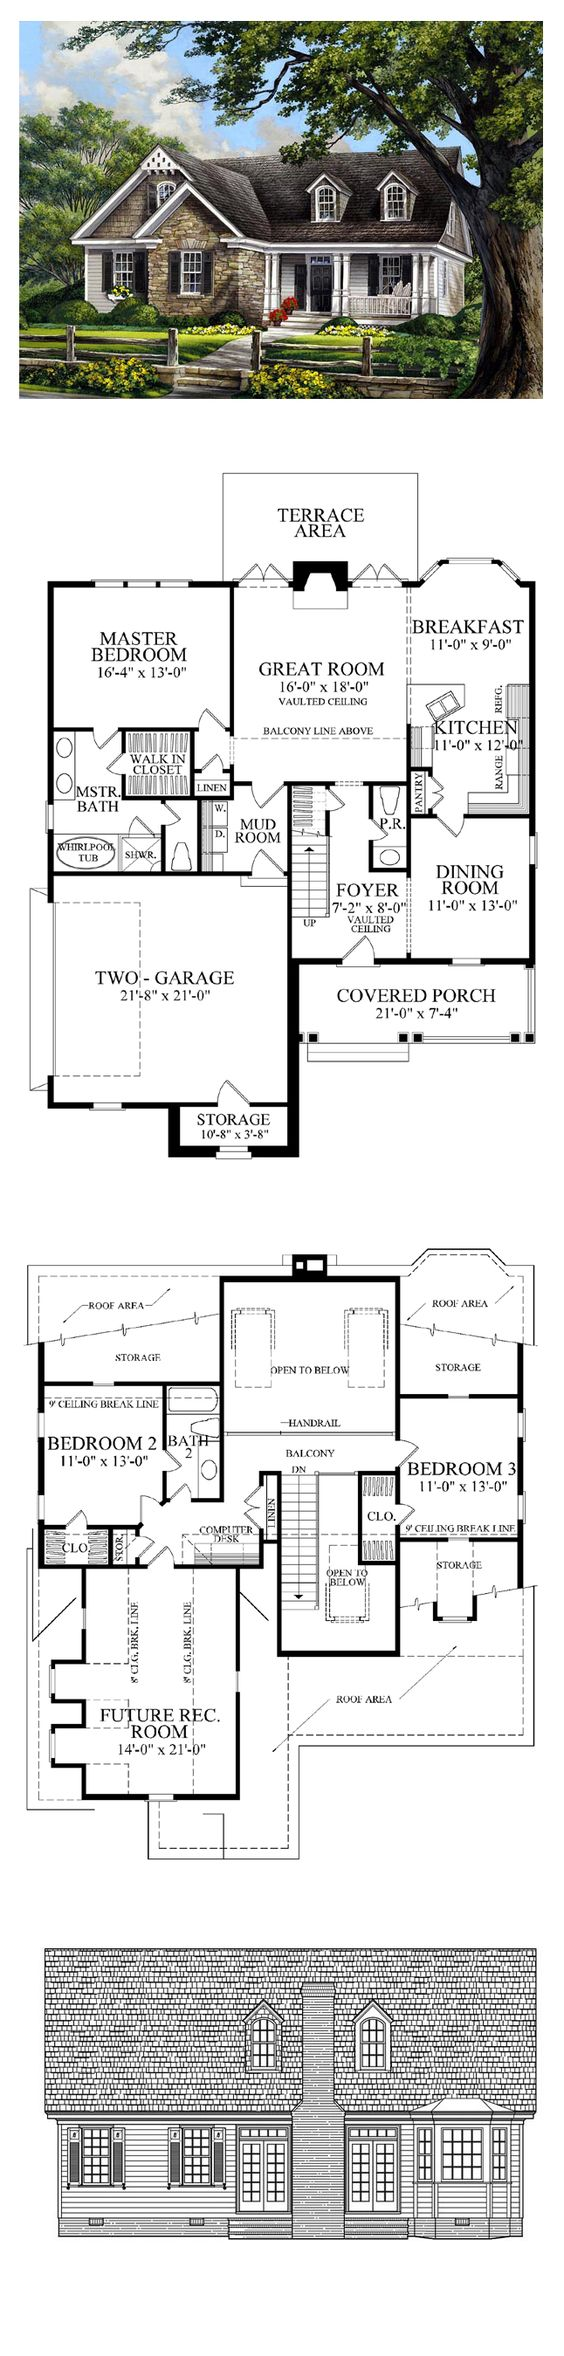 Cape cod cottage country french country house plan 86109 for French cottage floor plans